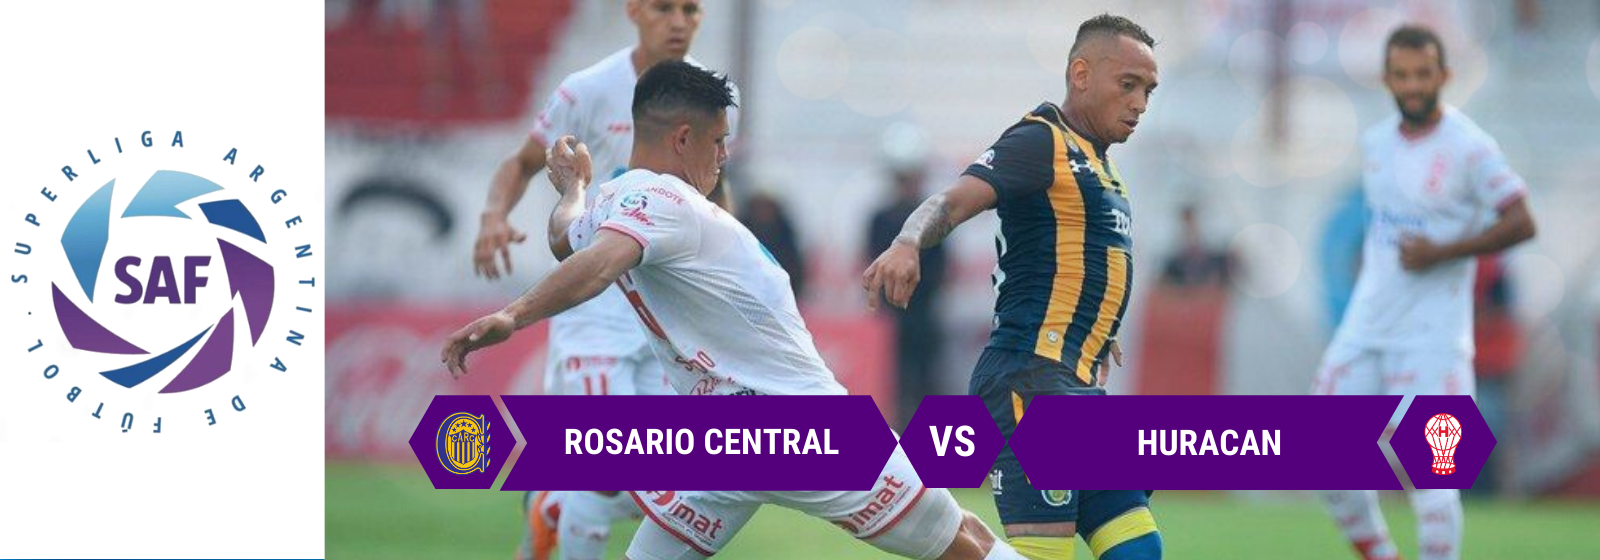 Asianconnect: Rosario Central vs Huracan Odds for January 24, 2020